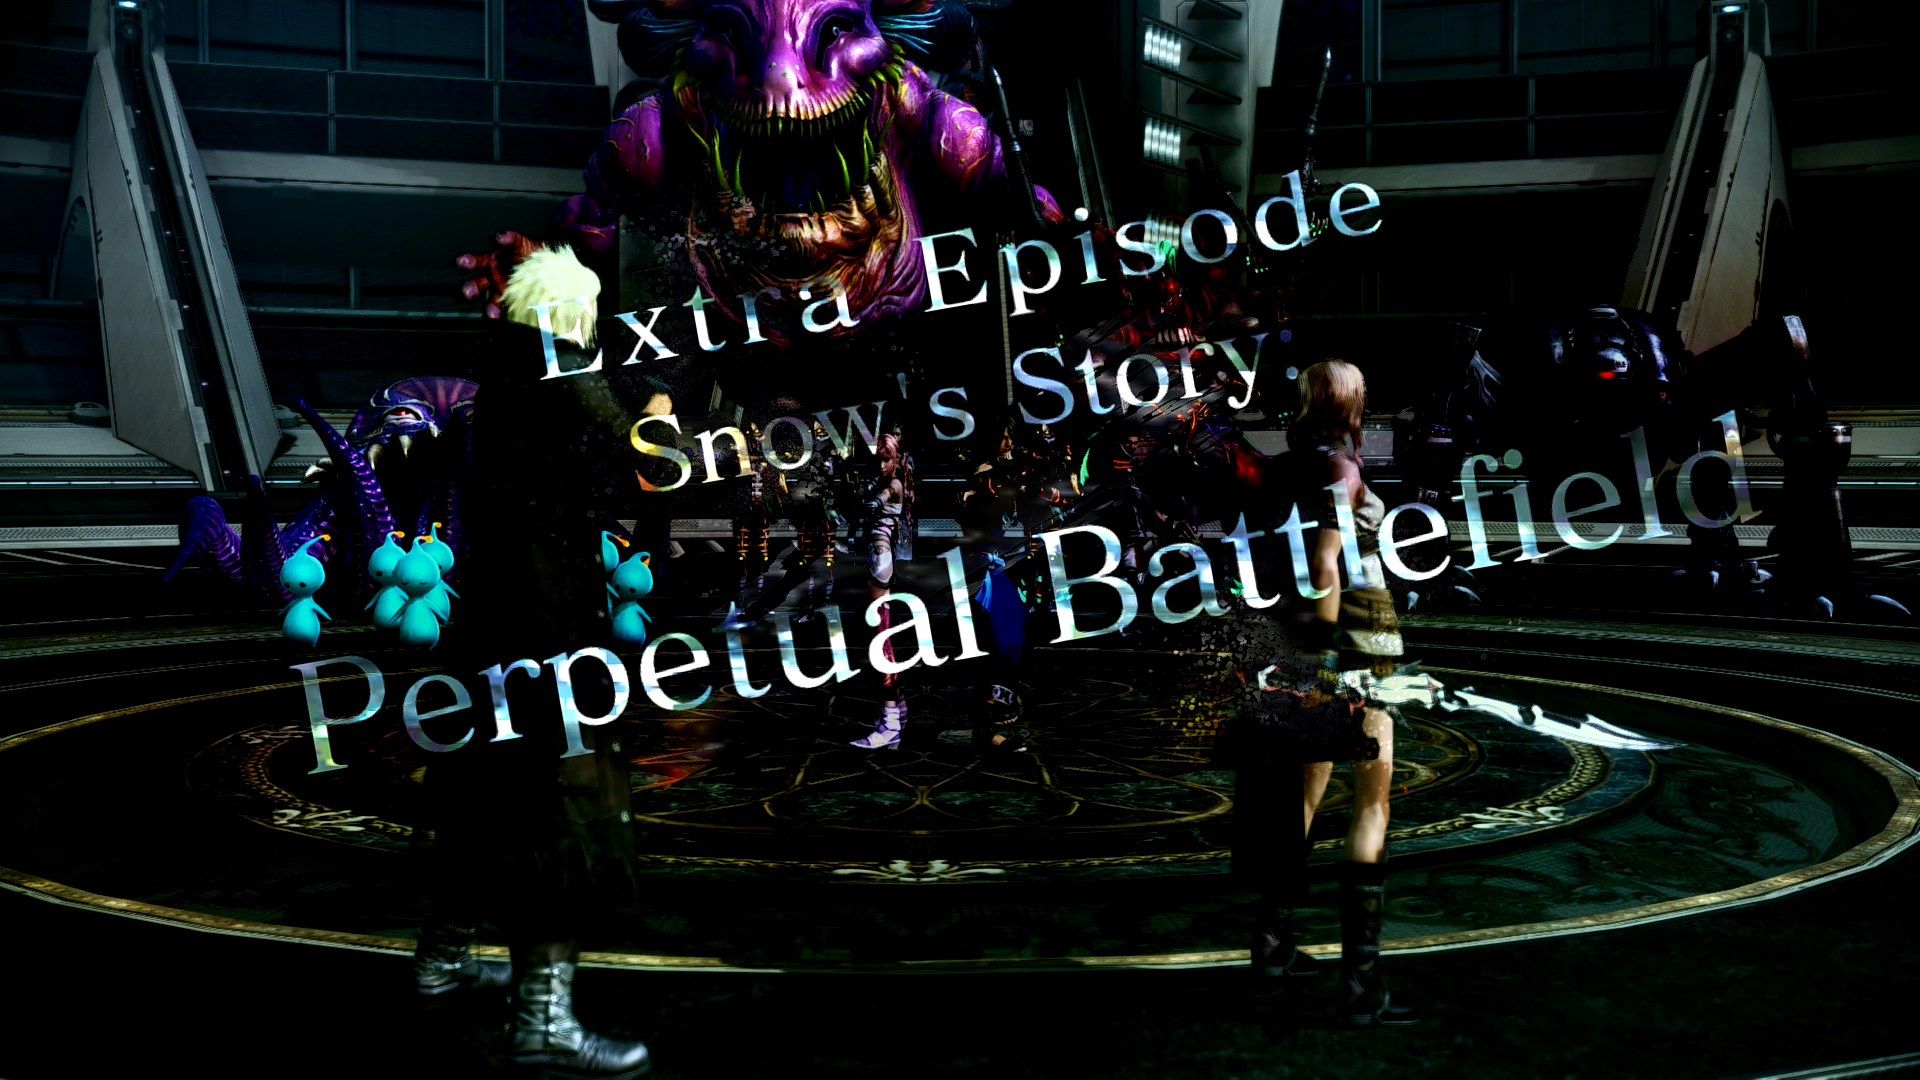 Snow's Story: Perpetual Battlefield